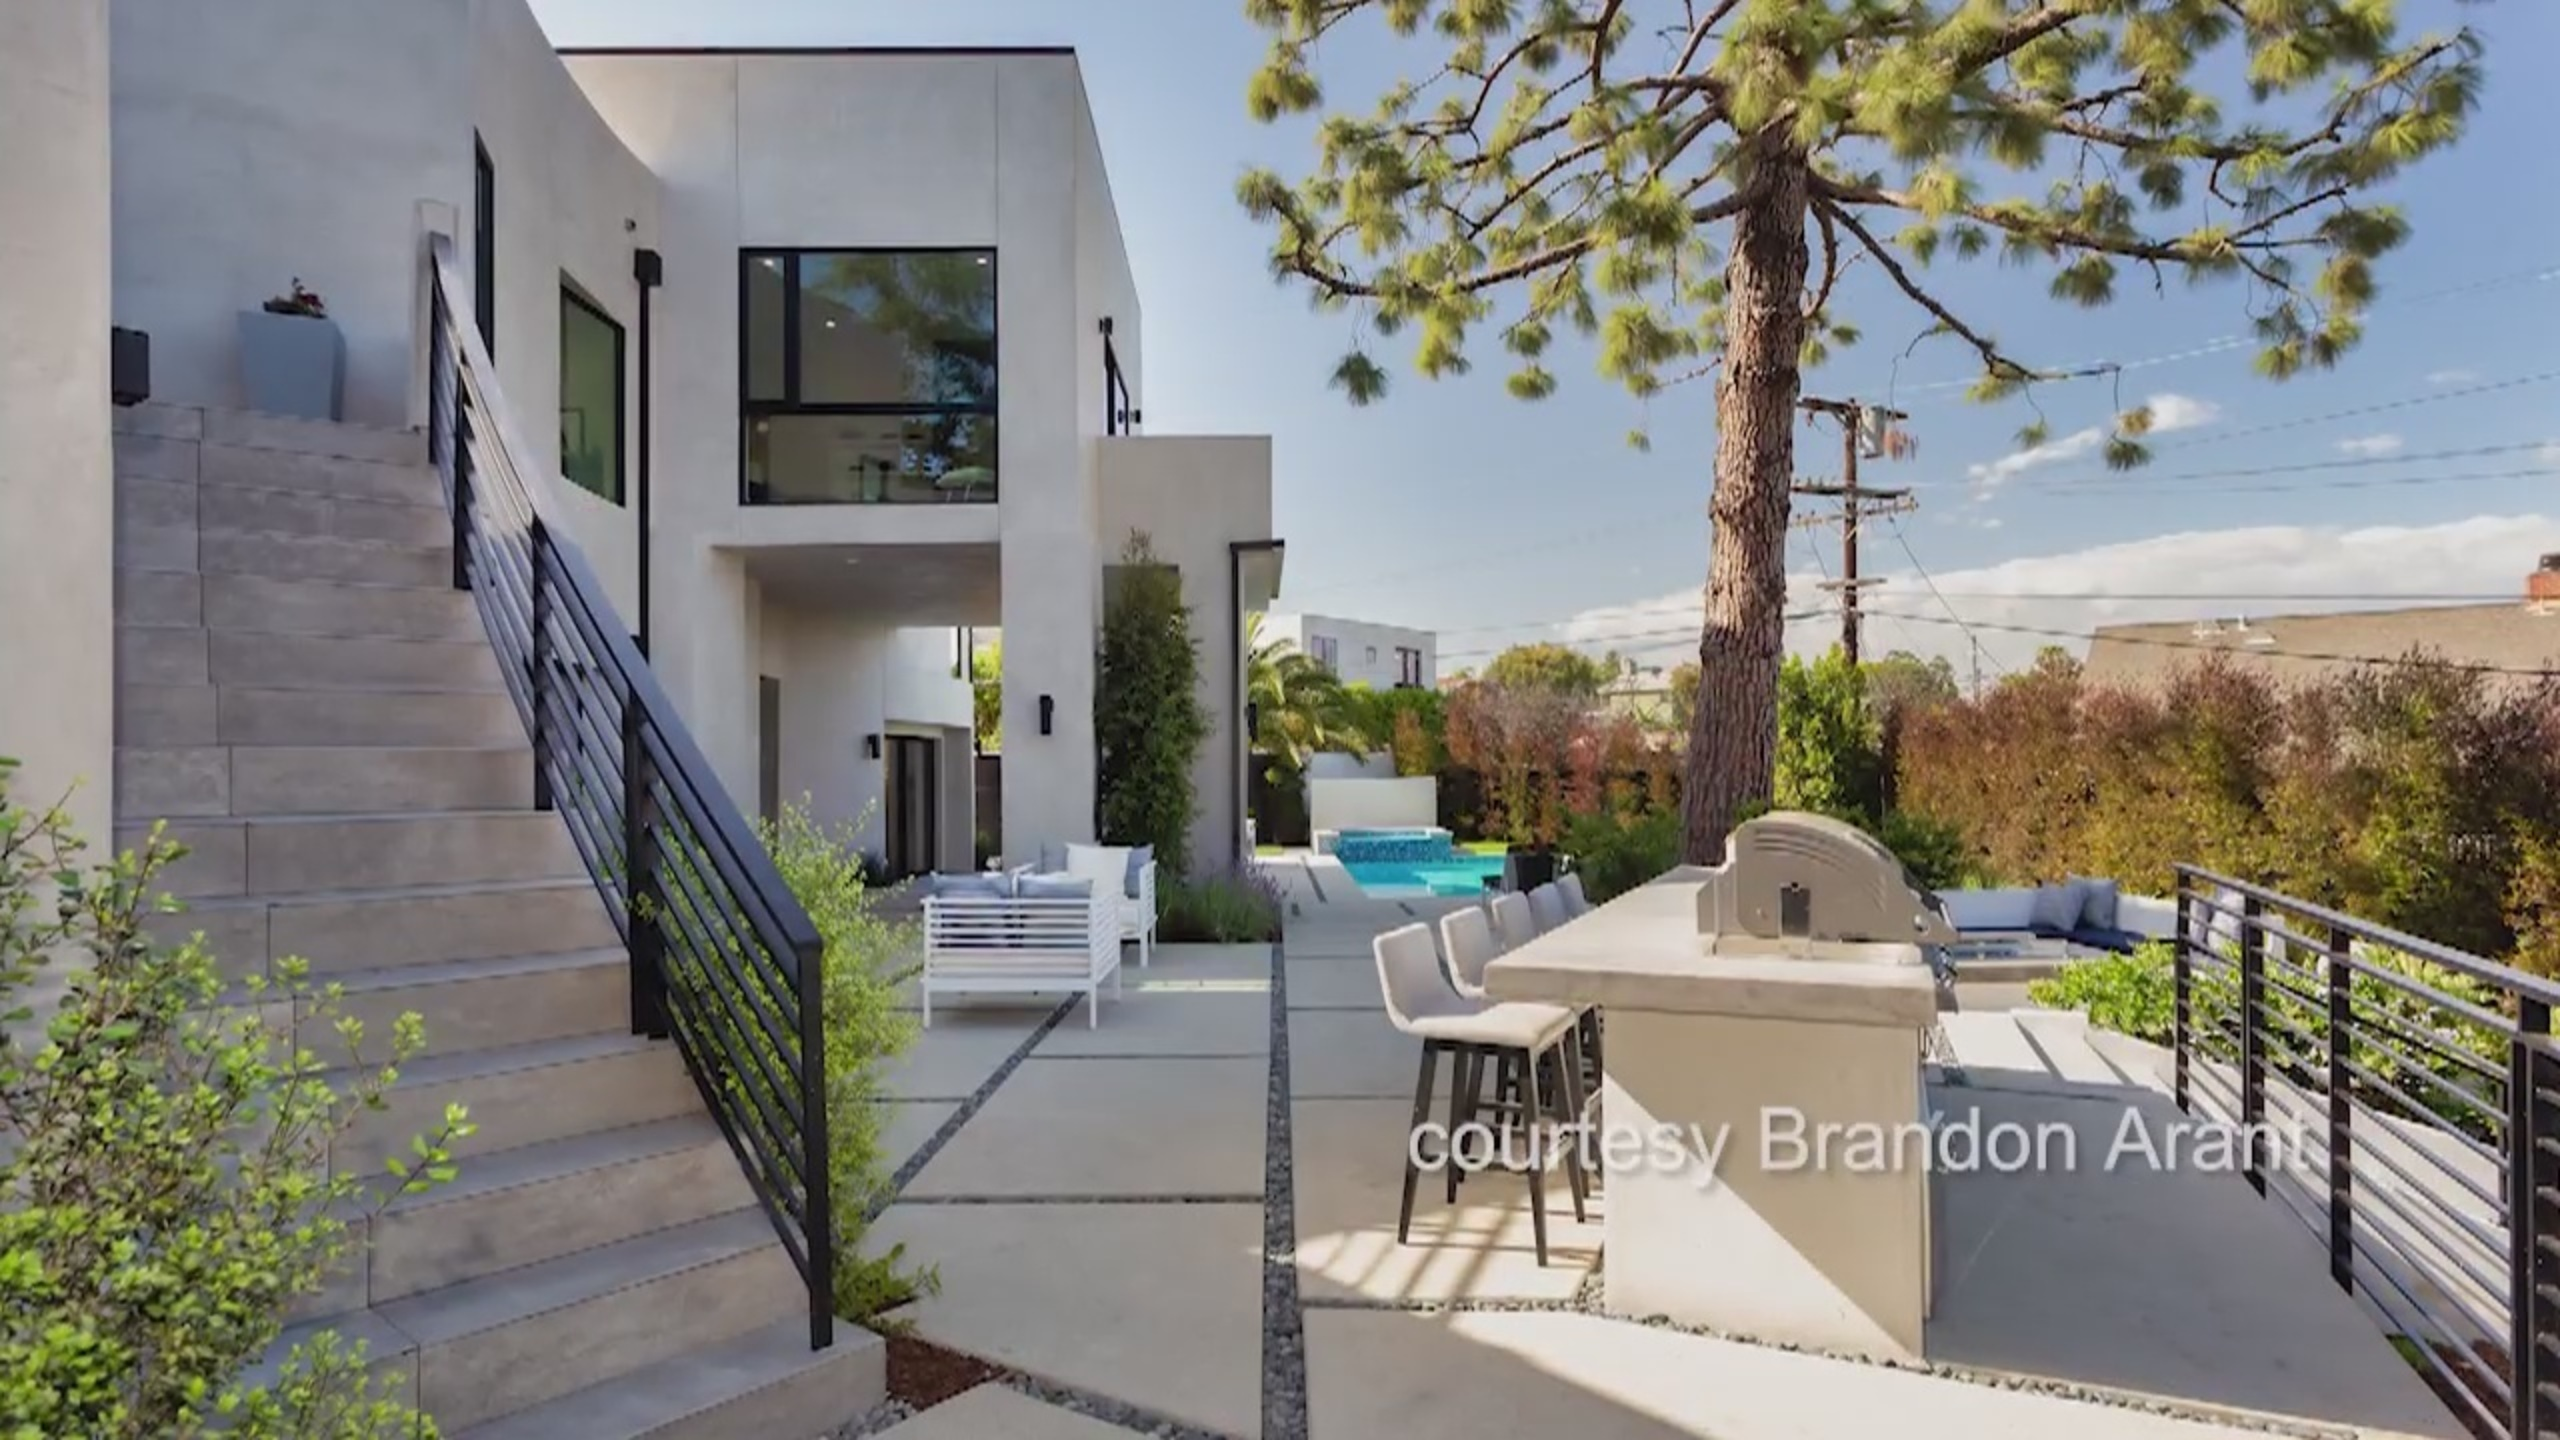 Top Property: Woman designer builds upscale home in Mar Vista